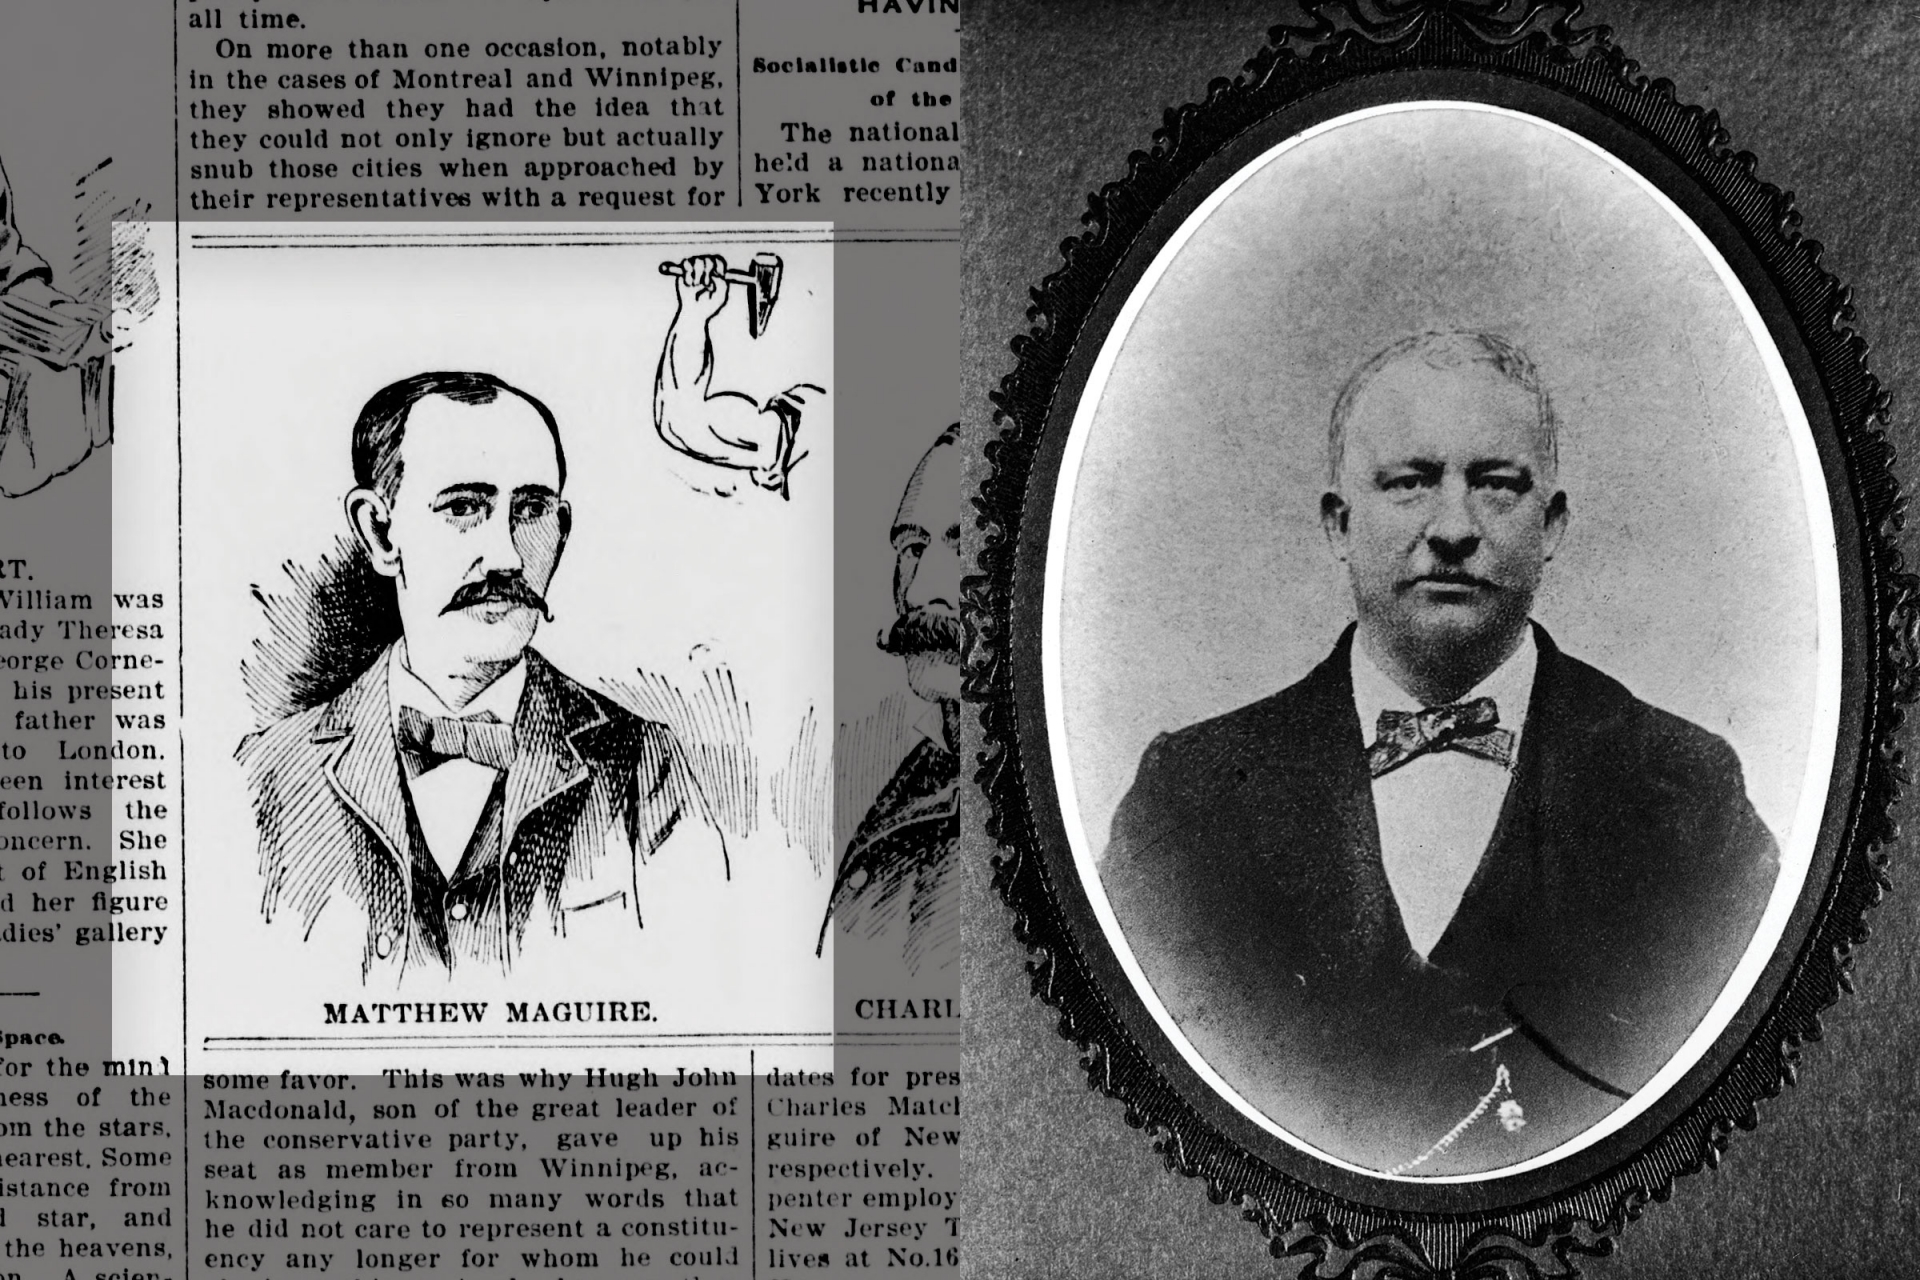 An illustration of Matthew Maguire in the Sept. 24, 1896, issue of the Lewiston Teller; Portrait of Peter J. McGuire